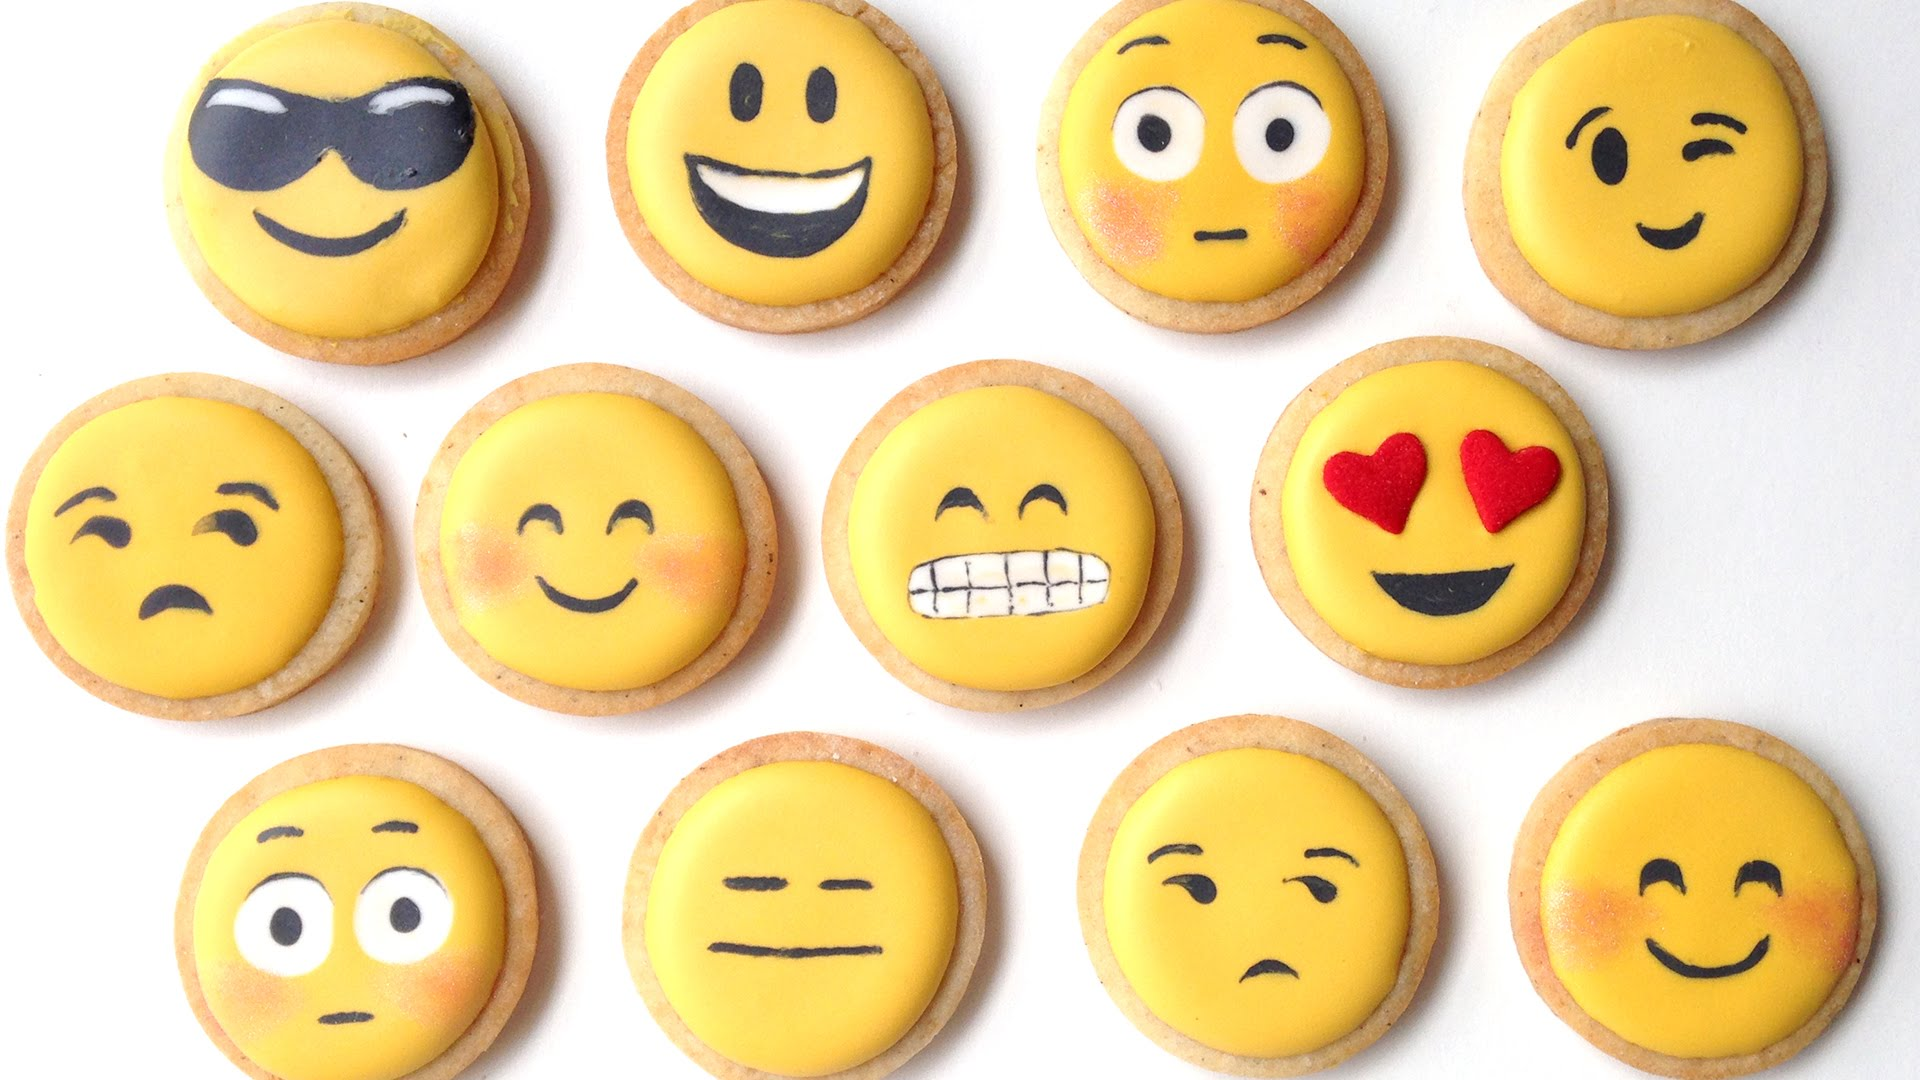 Her Technique In Making These Emoji Cookies Will Have You Memorized